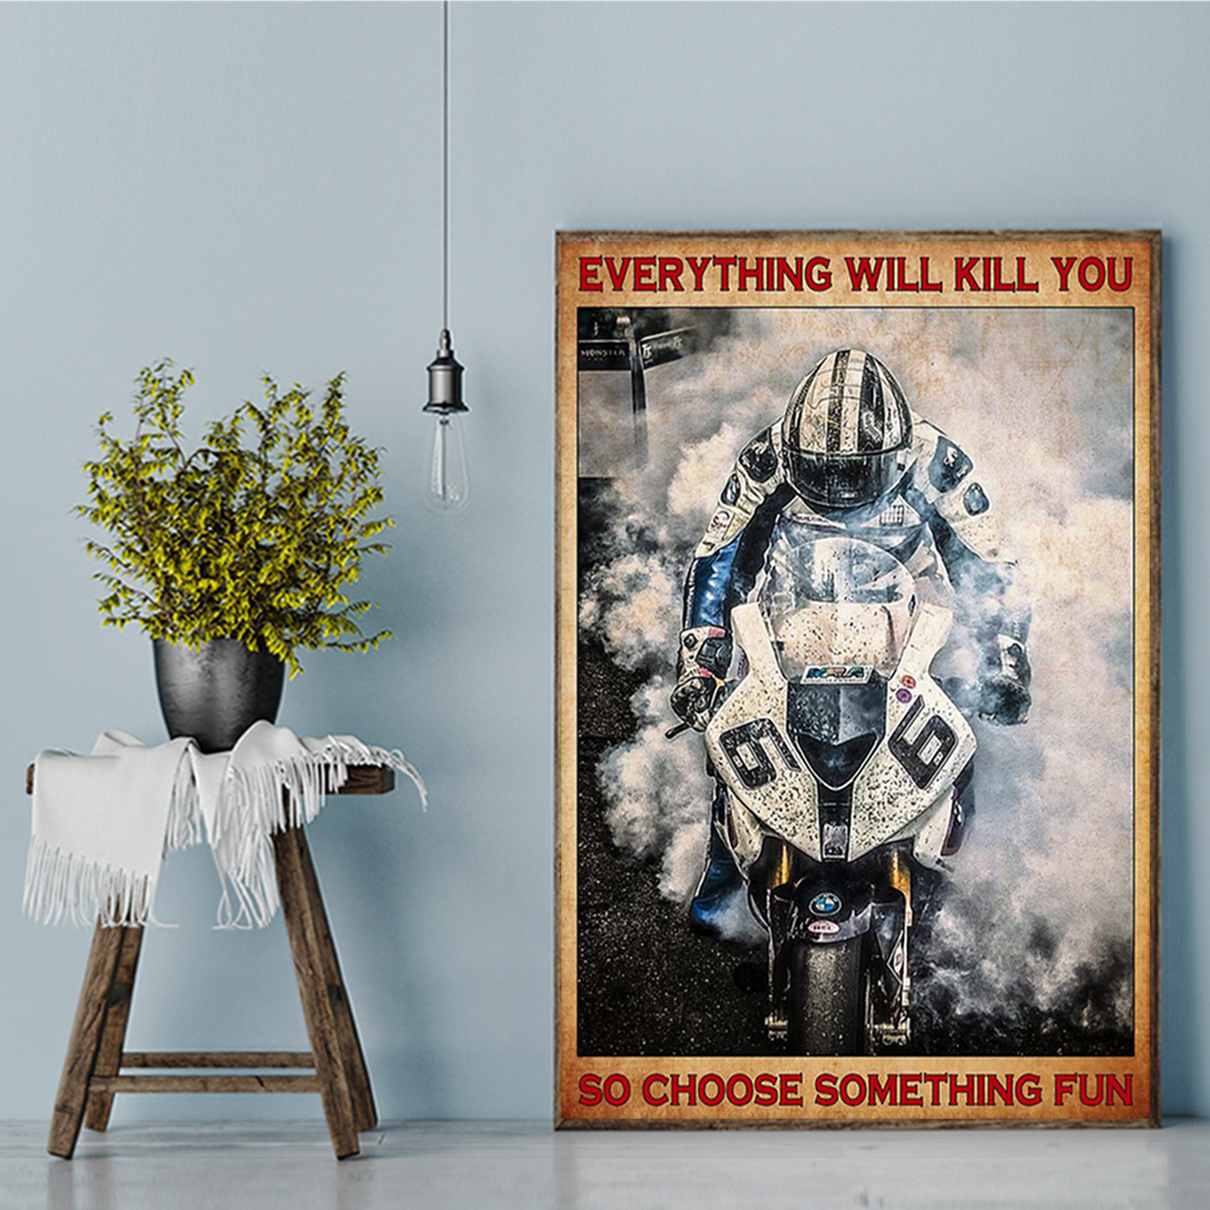 Isle of man tt everything will kill you so choose something fun poster A2